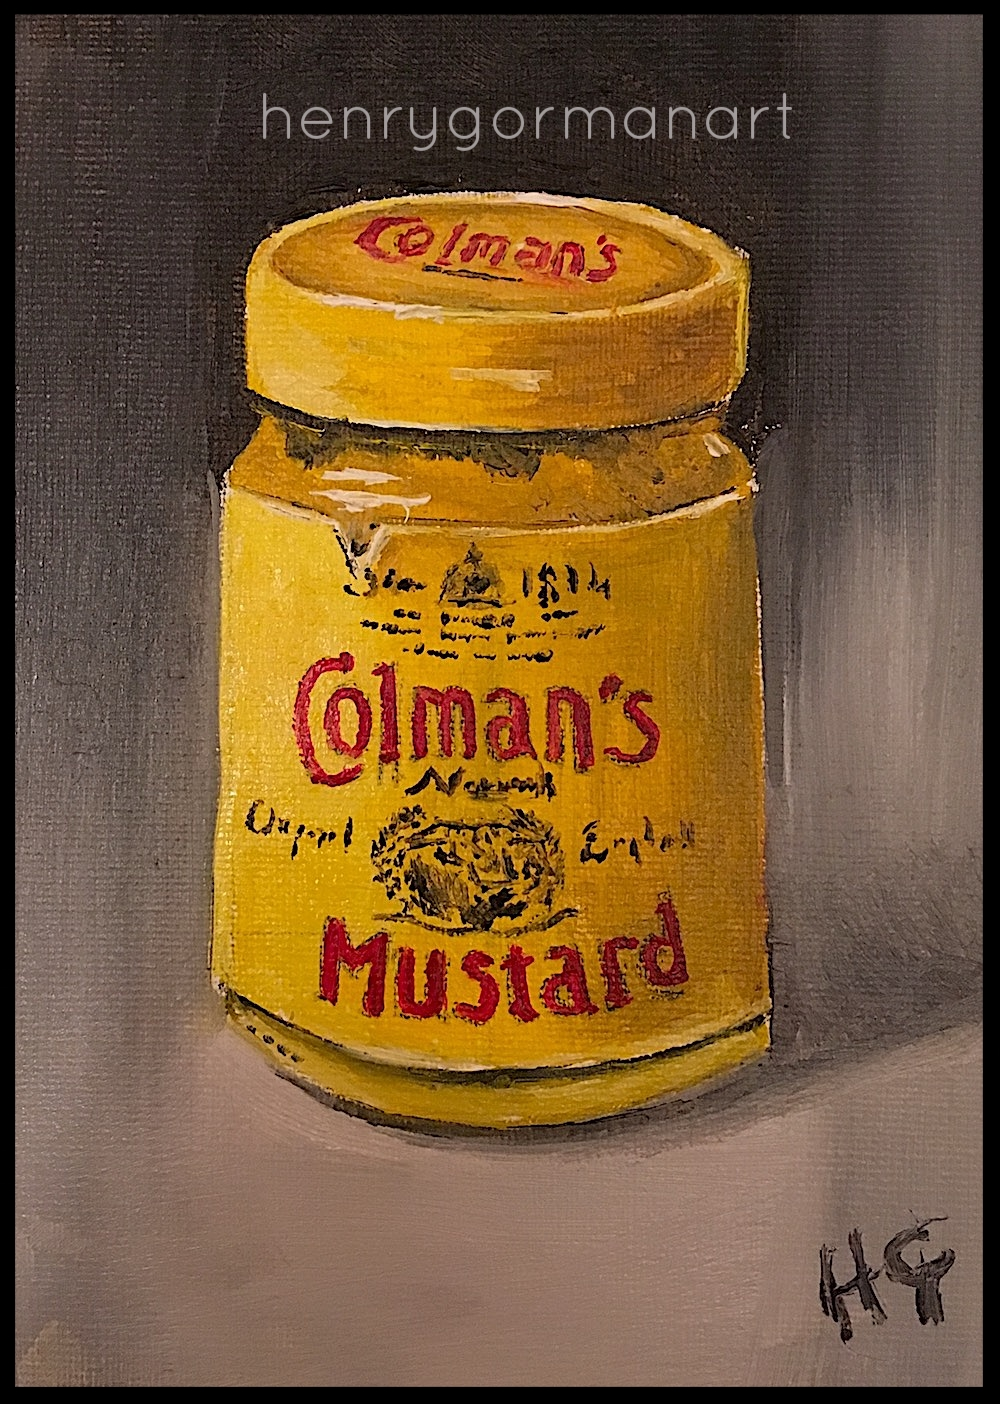 'Cutting the Mustard'